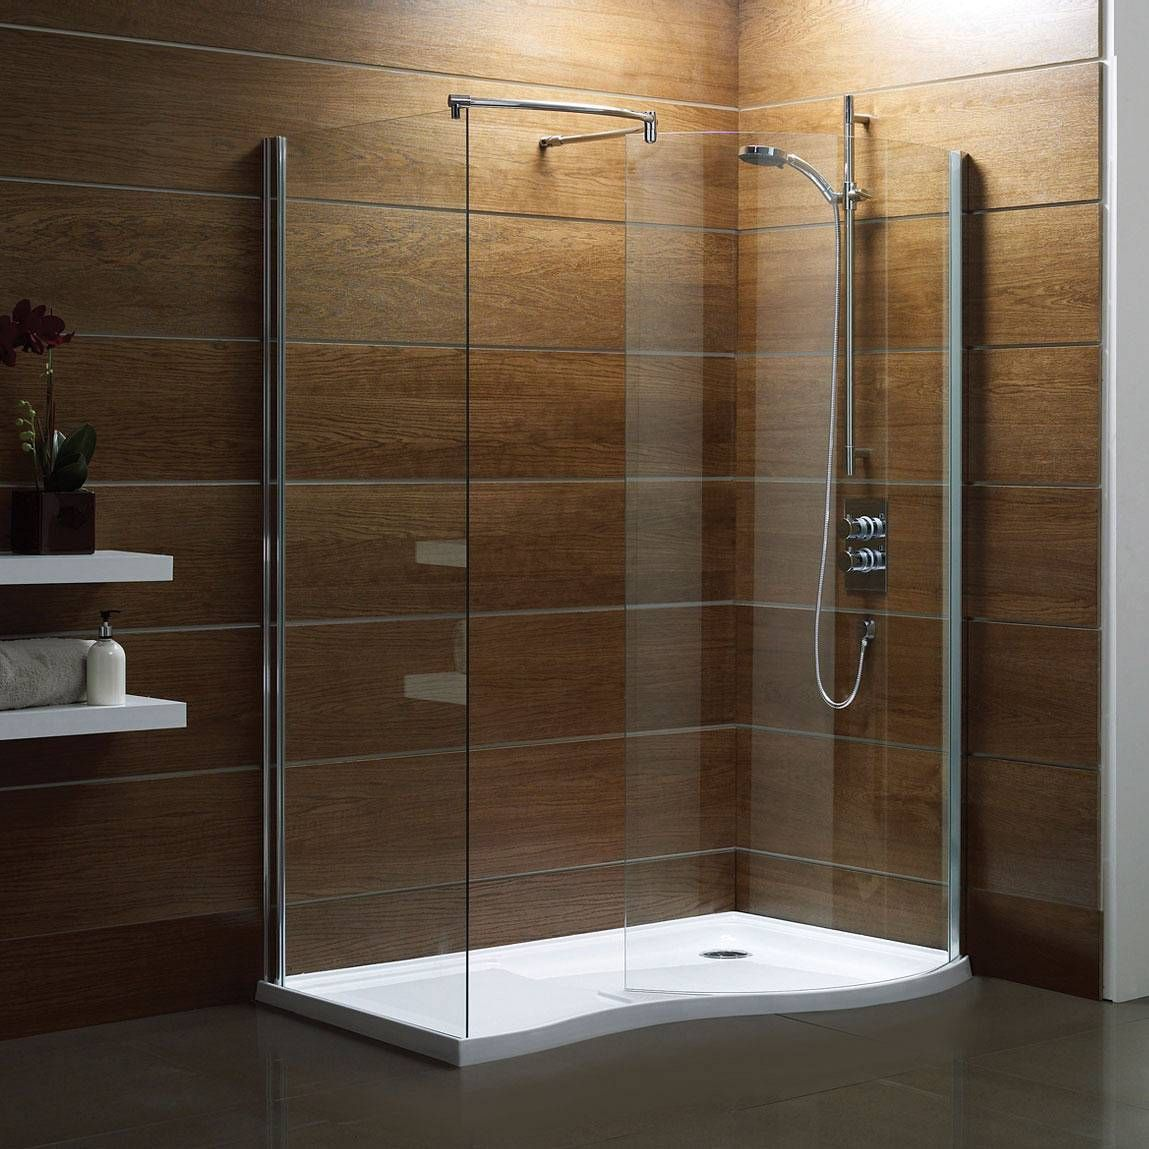 Wood showers wooden interior walk in shower design ideas Modern bathroom tile images